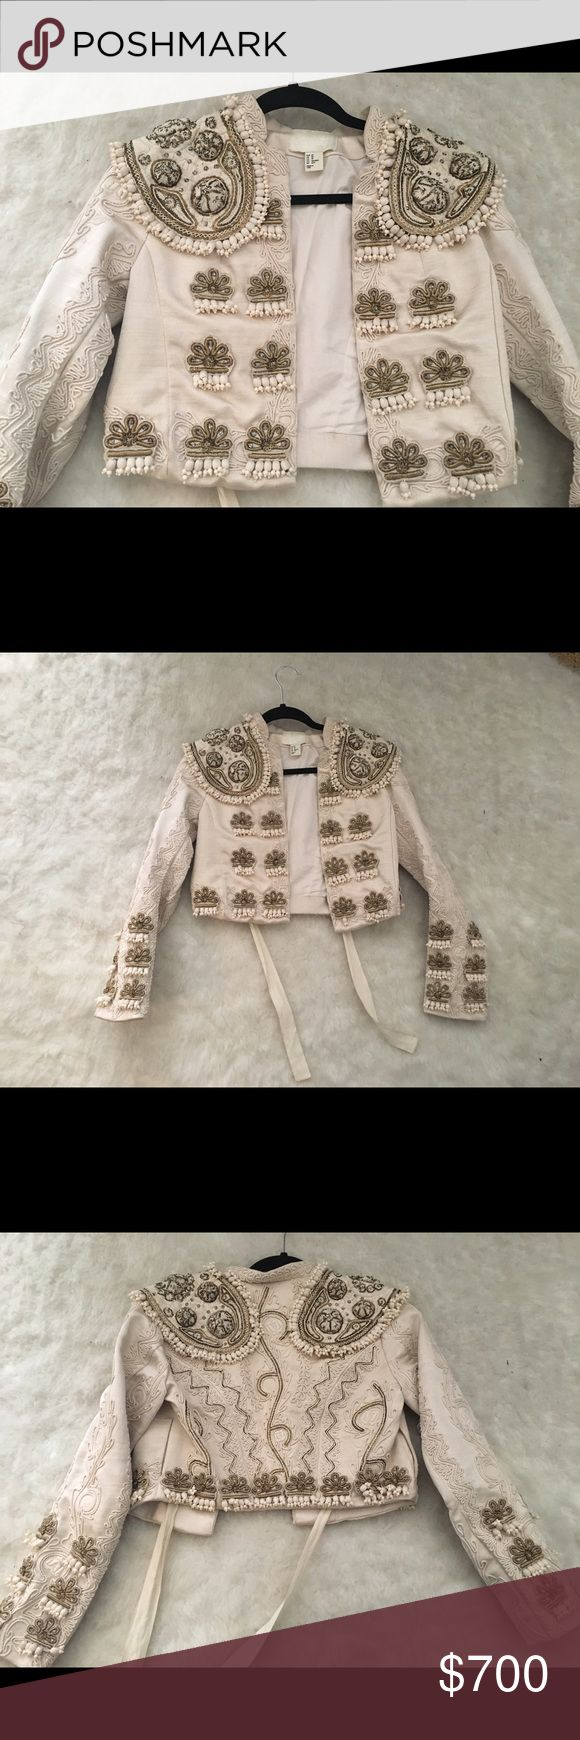 H&m conscious collection balmain matador jacket Xs Hm exclusive conscious collection rare find Xs jacket bolero completely headed and embroidered also for sale on mercai for less H&M Jackets & Coats Blazers